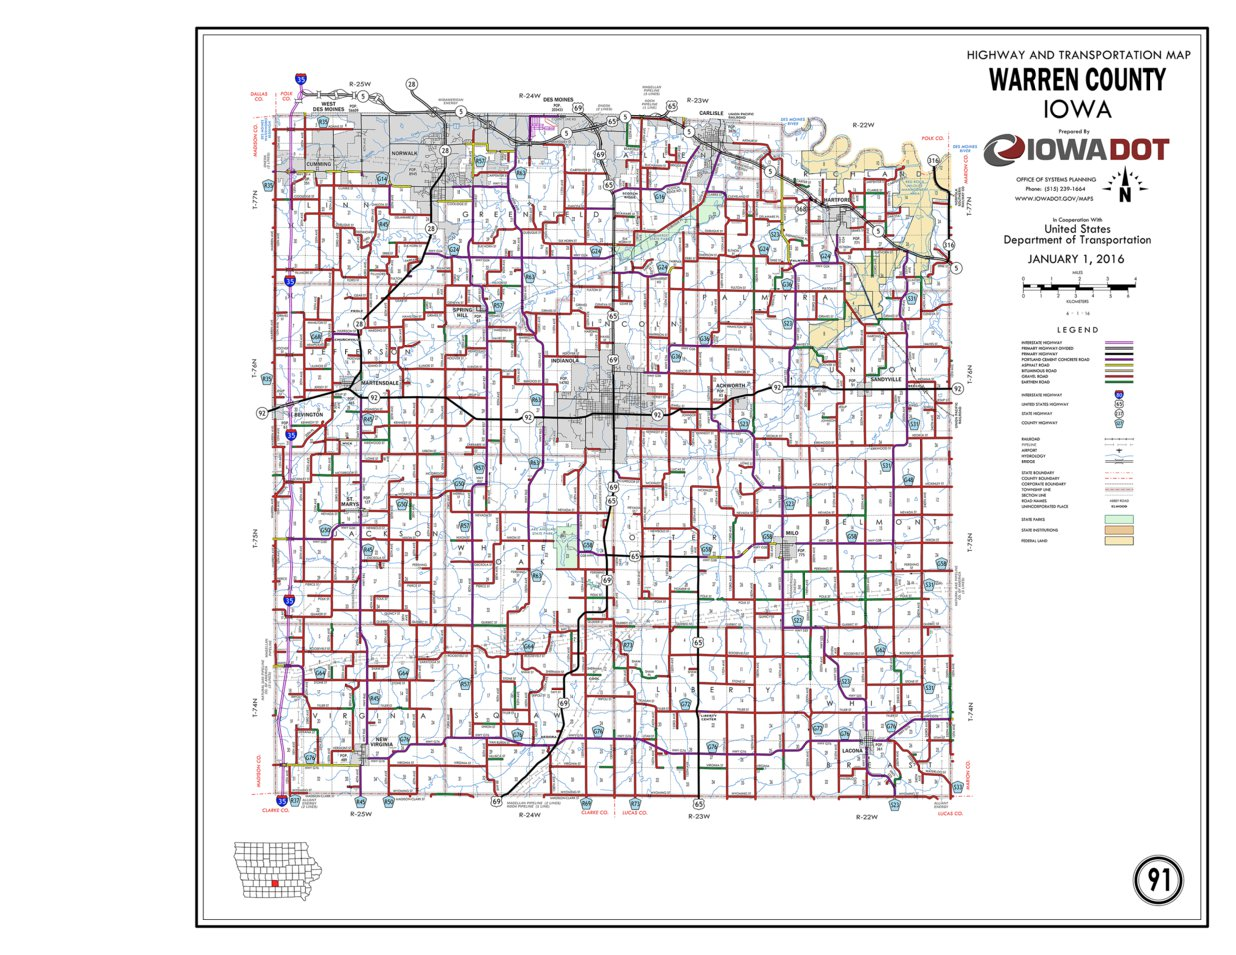 Warren County, Iowa - Iowa Department of Transportation ... on map of west carrollton, map of petros, map pa county, map of oneida, map of worthington state forest, map of cook forest state park, map of clive, map of city of niagara falls, map of upper bucks, map of rock island state park, map of new carlisle, map of middleburg heights, map of clarion, map maine county, map of ebensburg, map of piketon, map of hazlehurst, new jersey warren county, map of axtell, map of windsor heights,